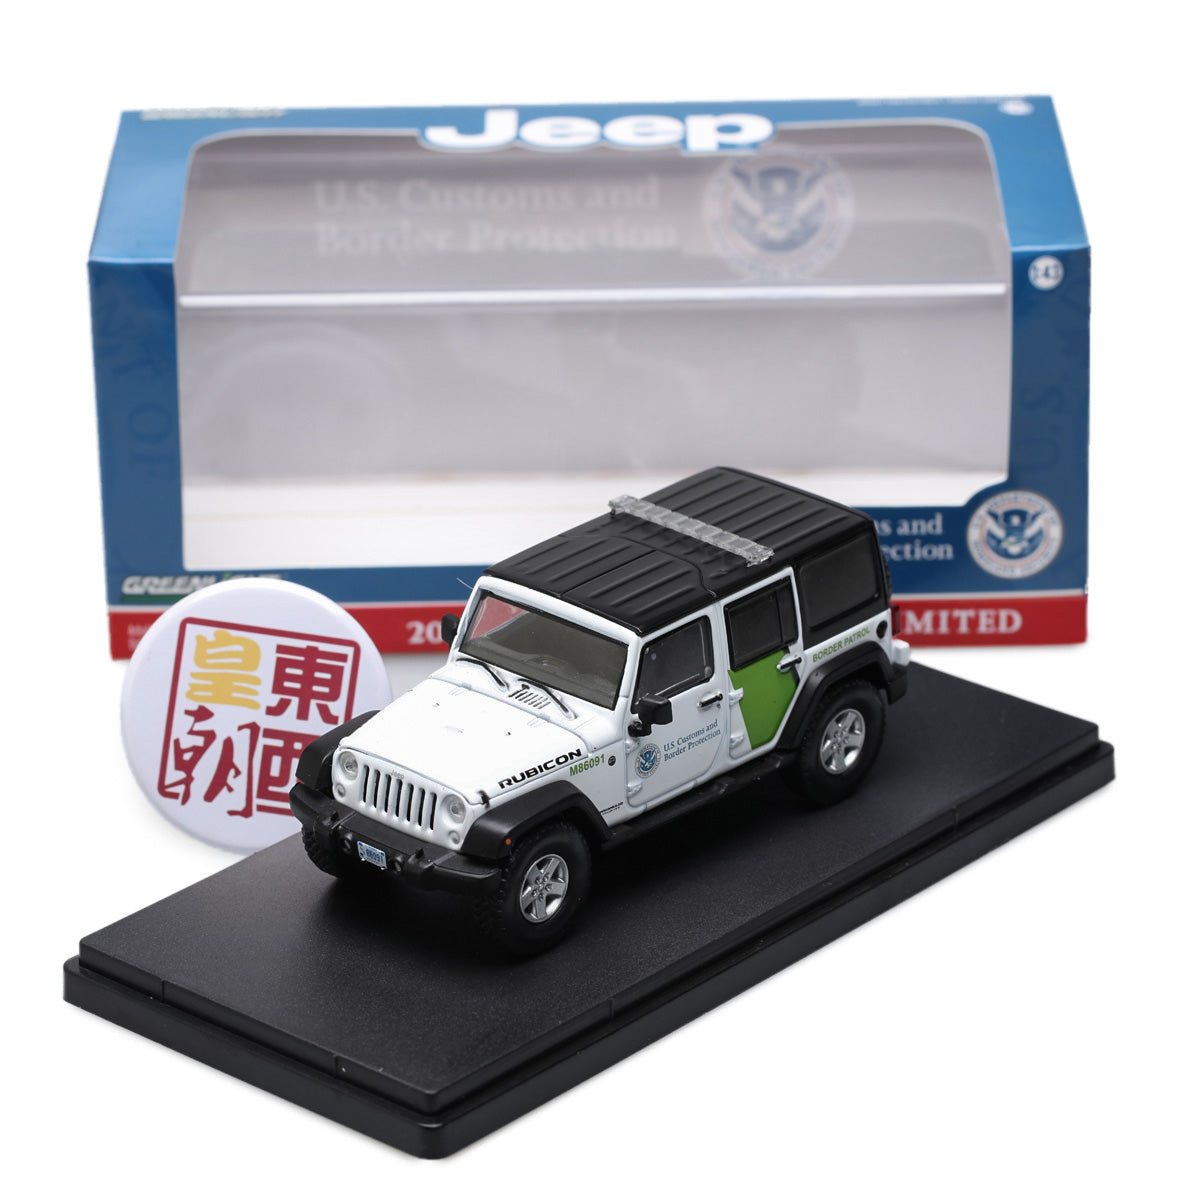 GreenLight 1:43 2015 Jeep Wrangler Unlimited - U.S. Customs and Border Protection Diecast Model Car 86091